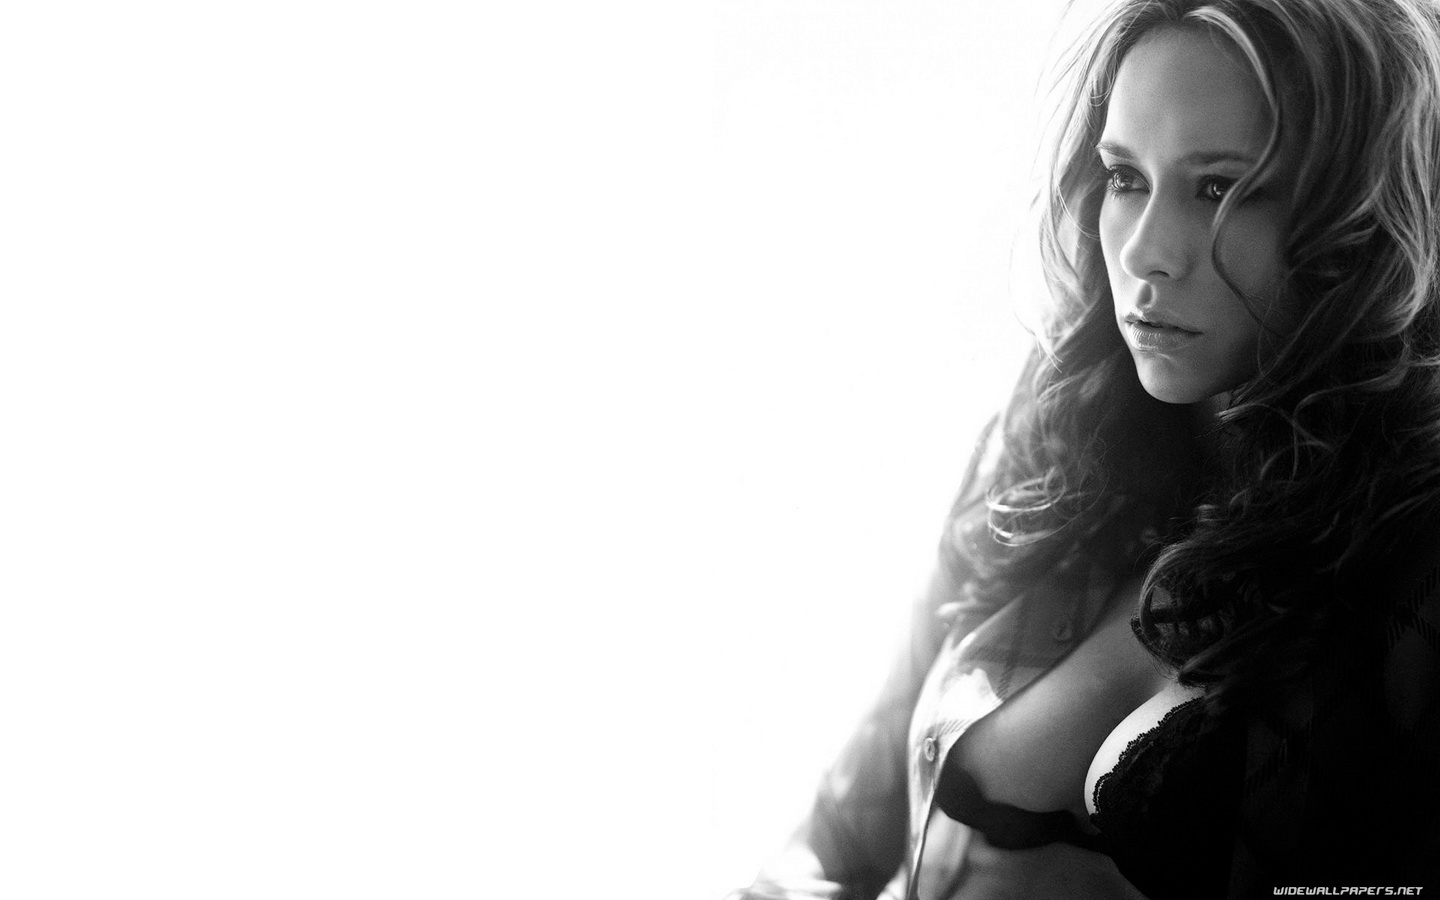 Wallpaper Hd Jennifer Love : Jennifer Love Hewitt celebrity desktop wallpapers HD and wide wallpapers